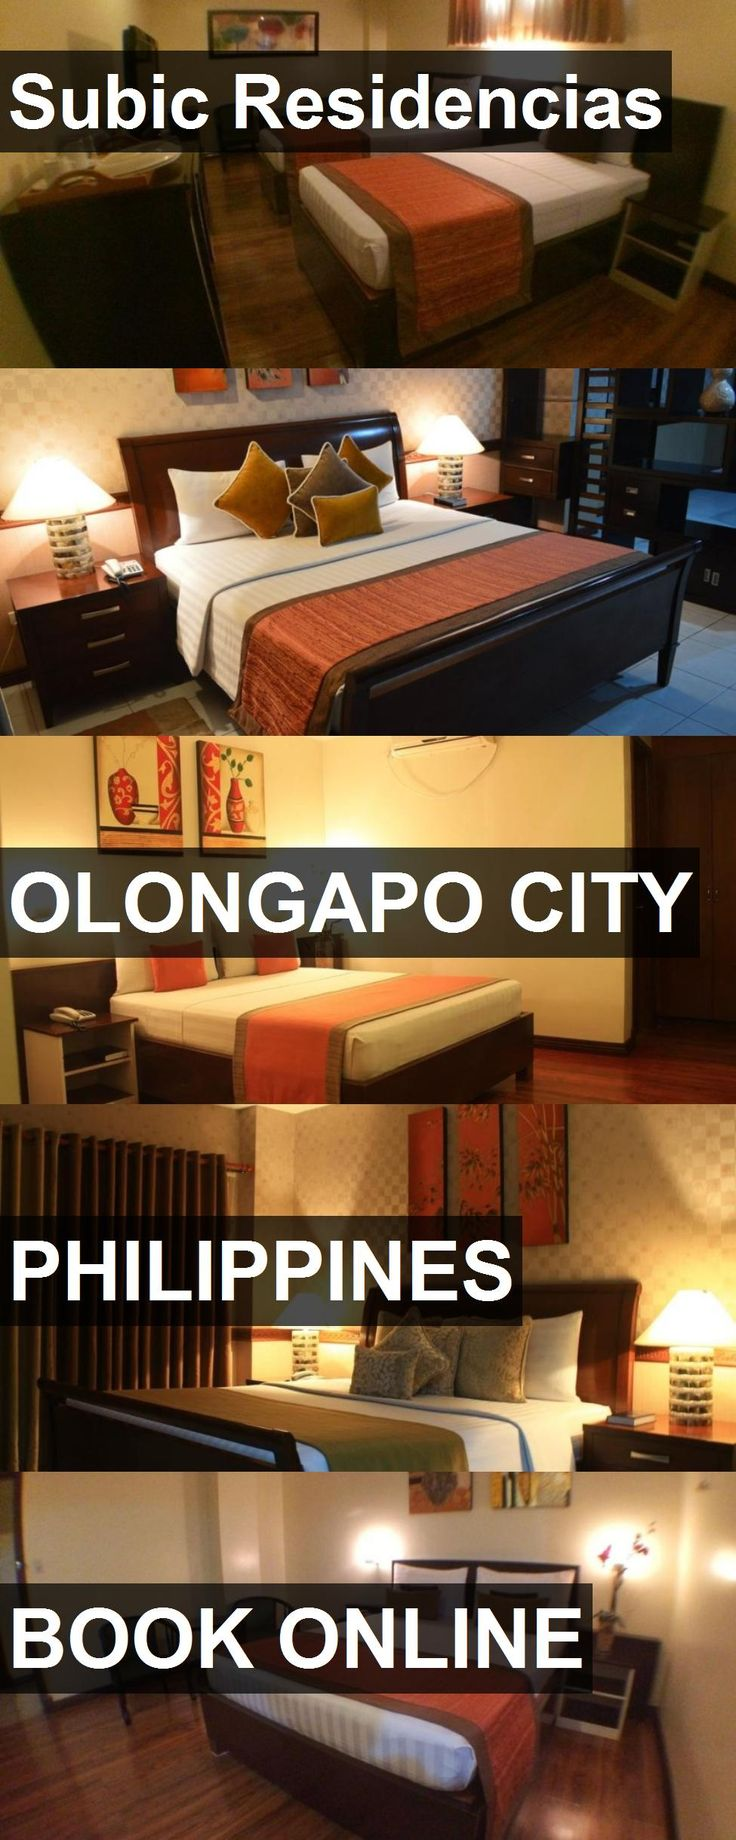 Hotel Subic Residencias in Olongapo City, Philippines. For more information, photos, reviews and best prices please follow the link. #Philippines #OlongapoCity #SubicResidencias #hotel #travel #vacation